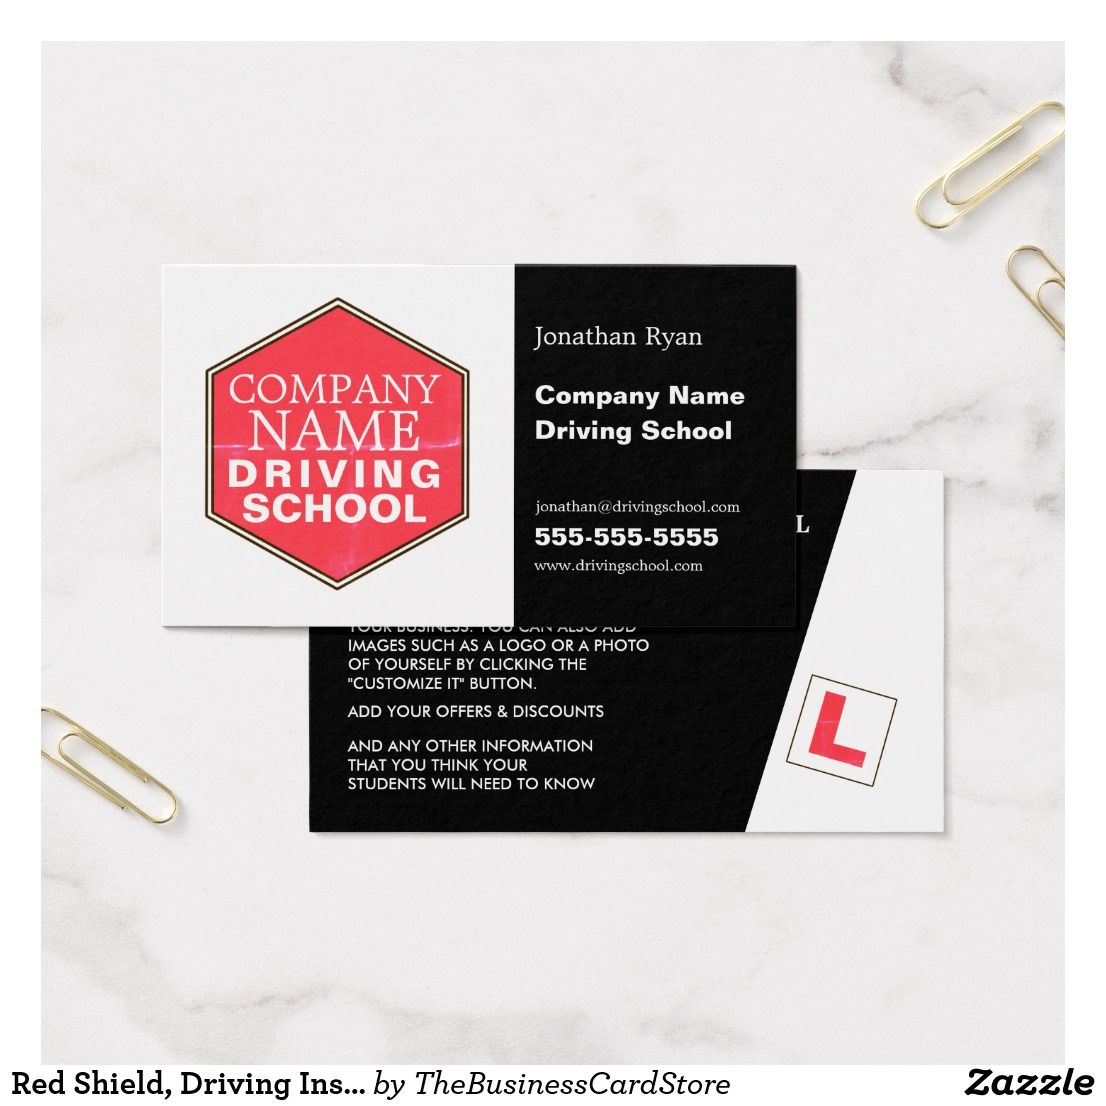 Red Shield, Driving Instructor Business Card | Business | Pinterest ...